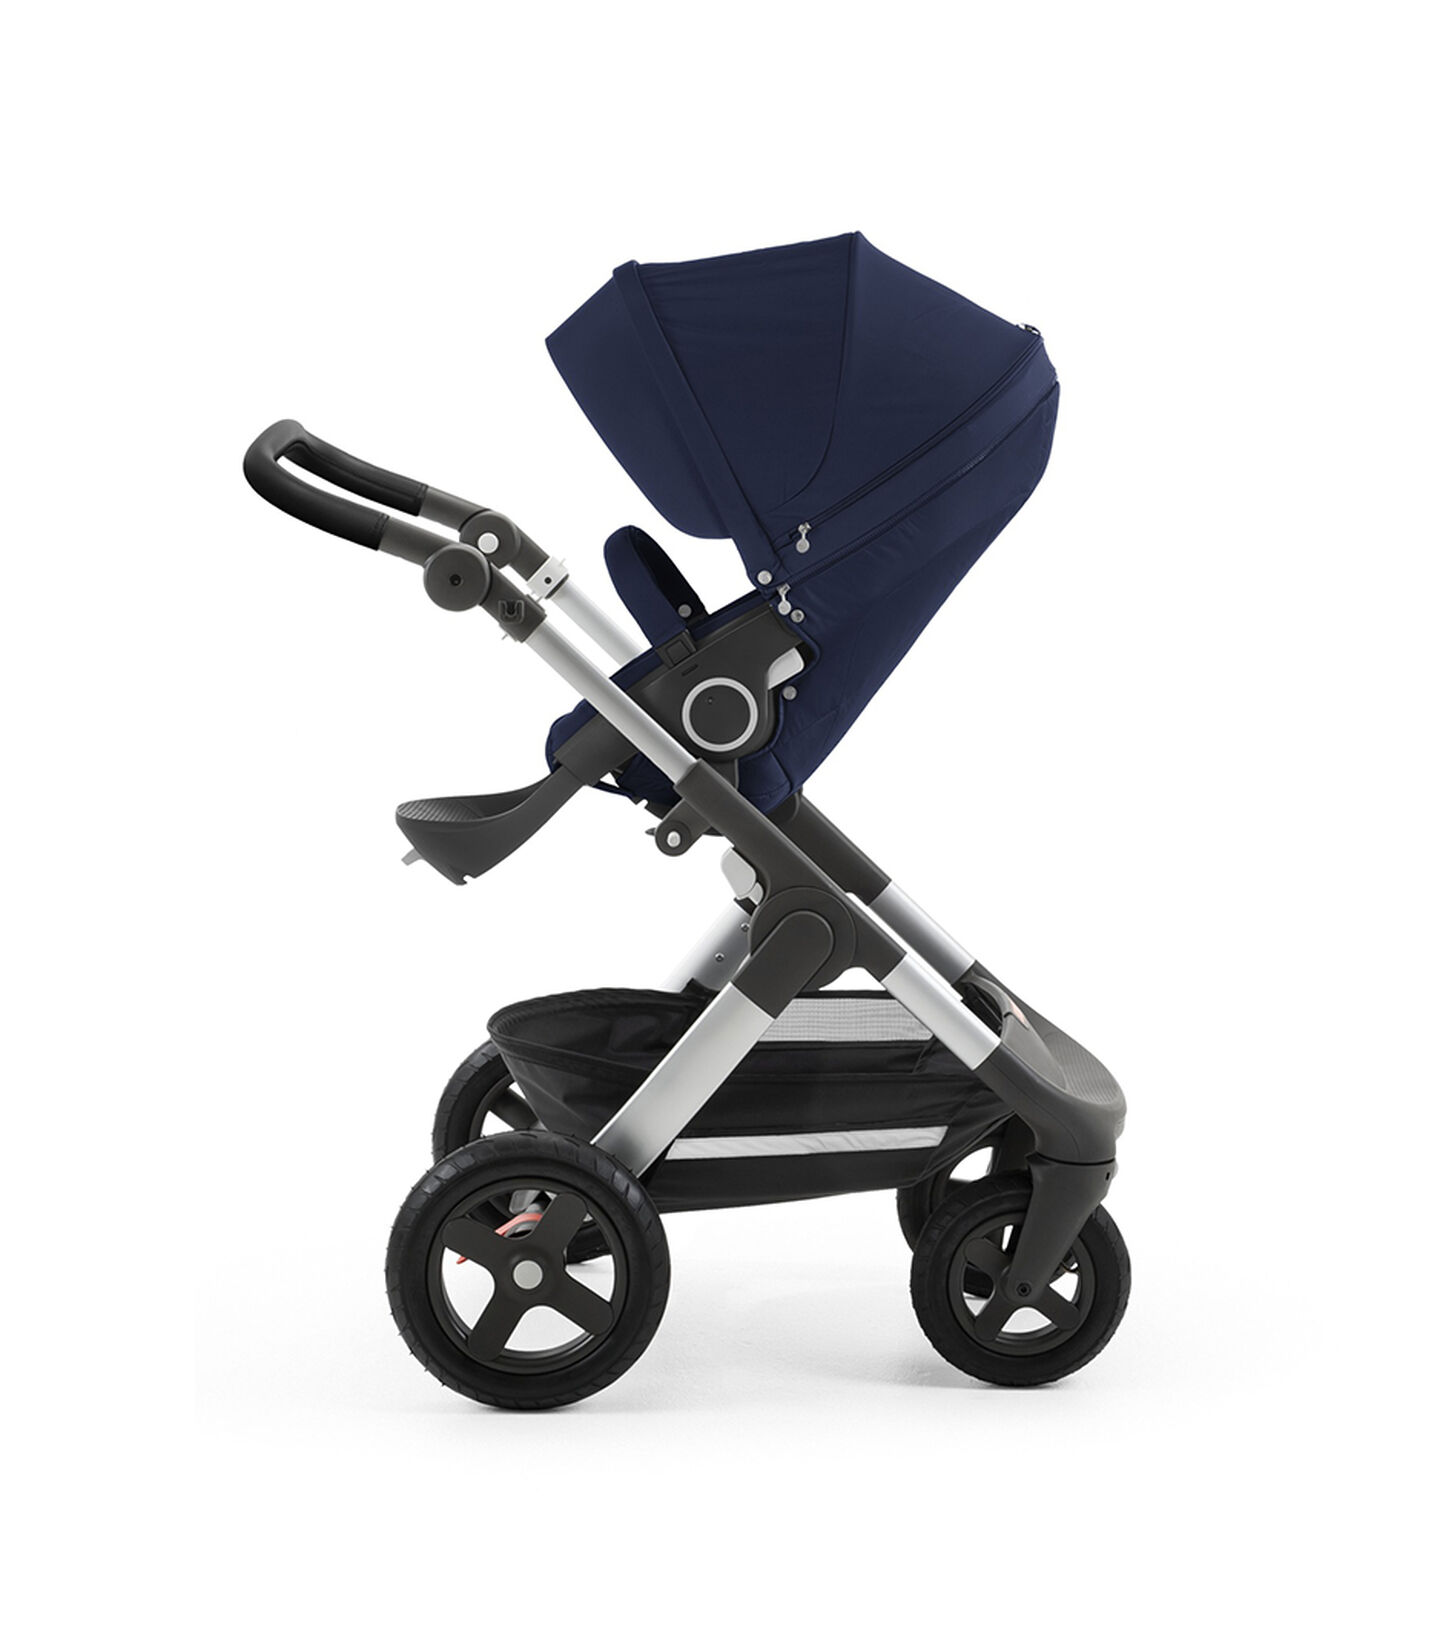 Stokke® Trailz™ with silver chassis and Stokke® Stroller Seat, Deep Blue. Leatherette Handle. Terrain Wheels. view 2